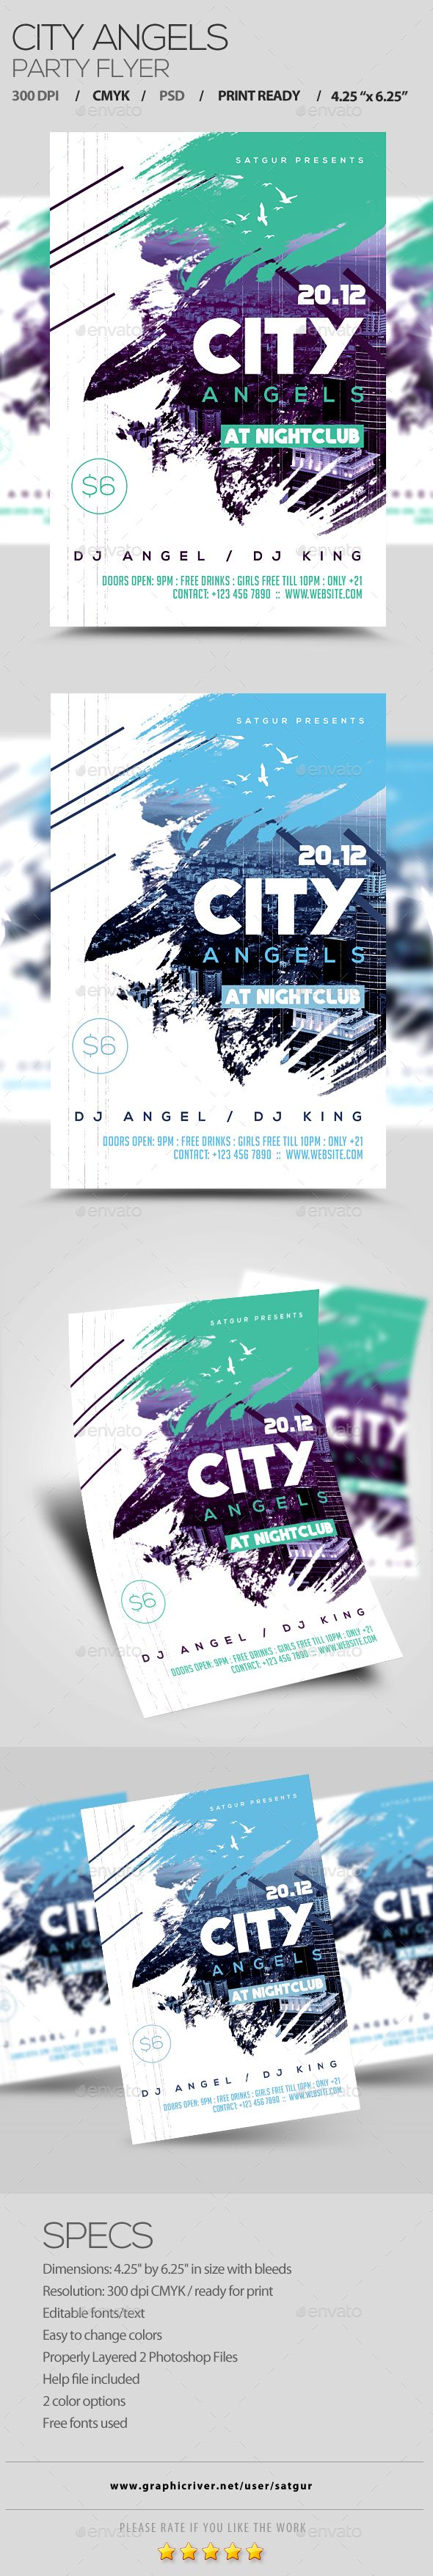 City Angels Party Flyer — Photoshop PSD #nightclub flyer #grunge flyer • Available here → https://graphicriver.net/item/city-angels-party-flyer/13956272?ref=pxcr